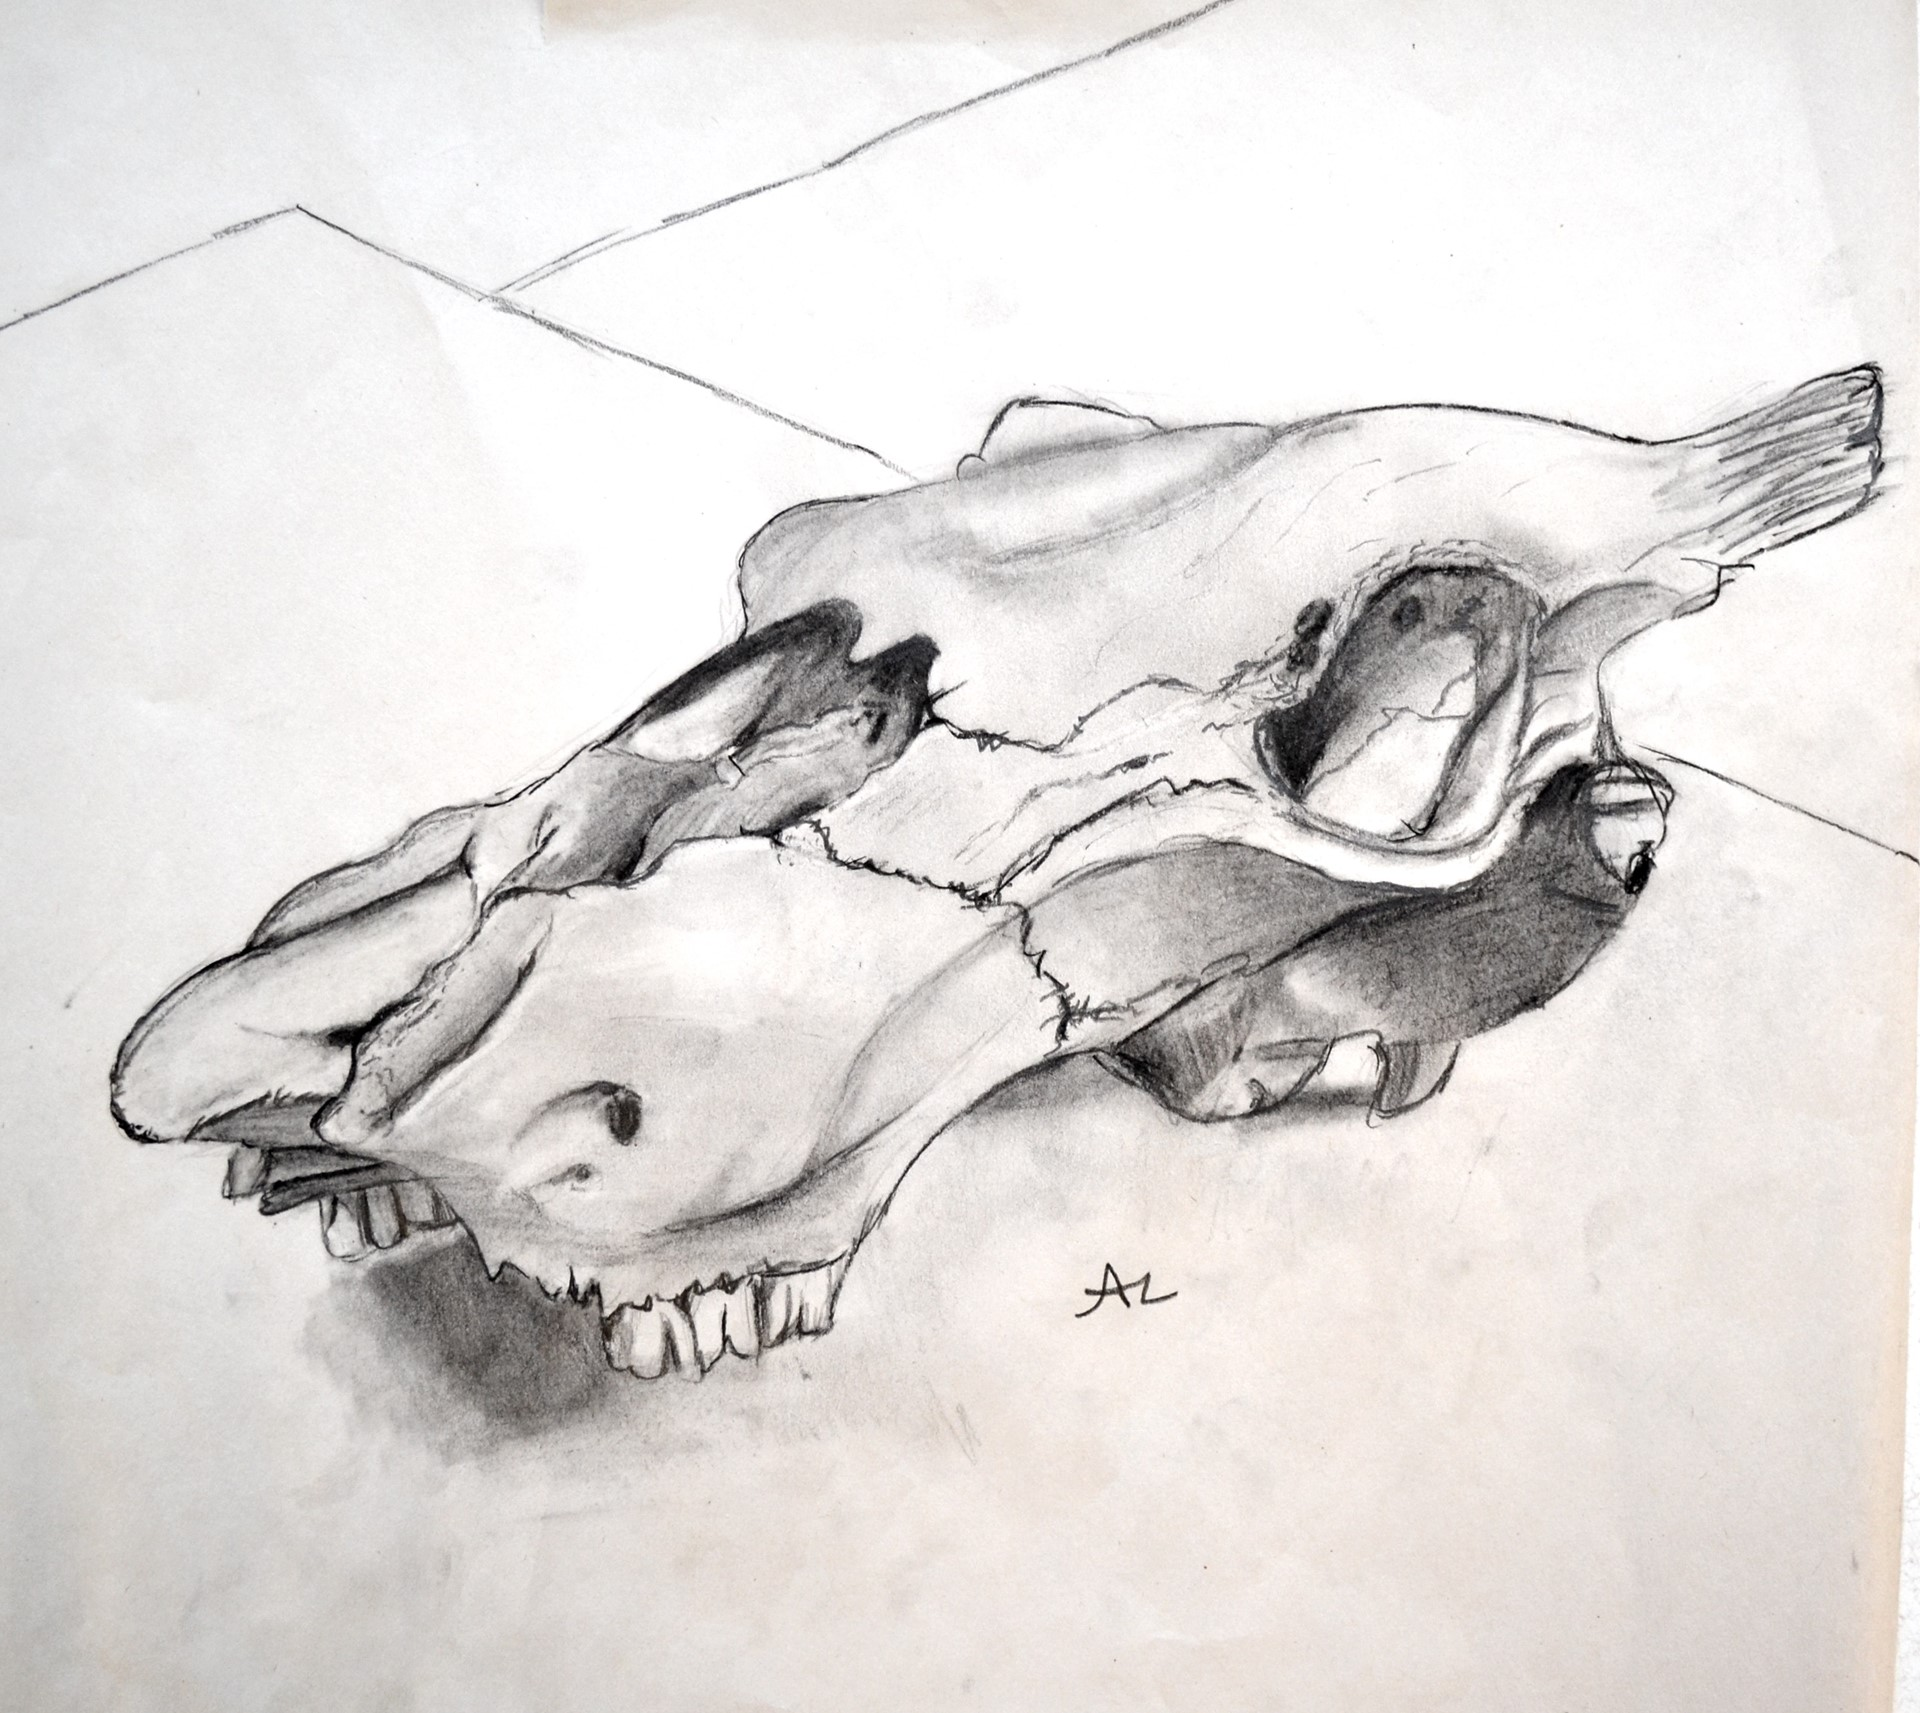 ANGELA LANANNA, Cow Skull, graphite, charcoal, 14 x 15, 2014